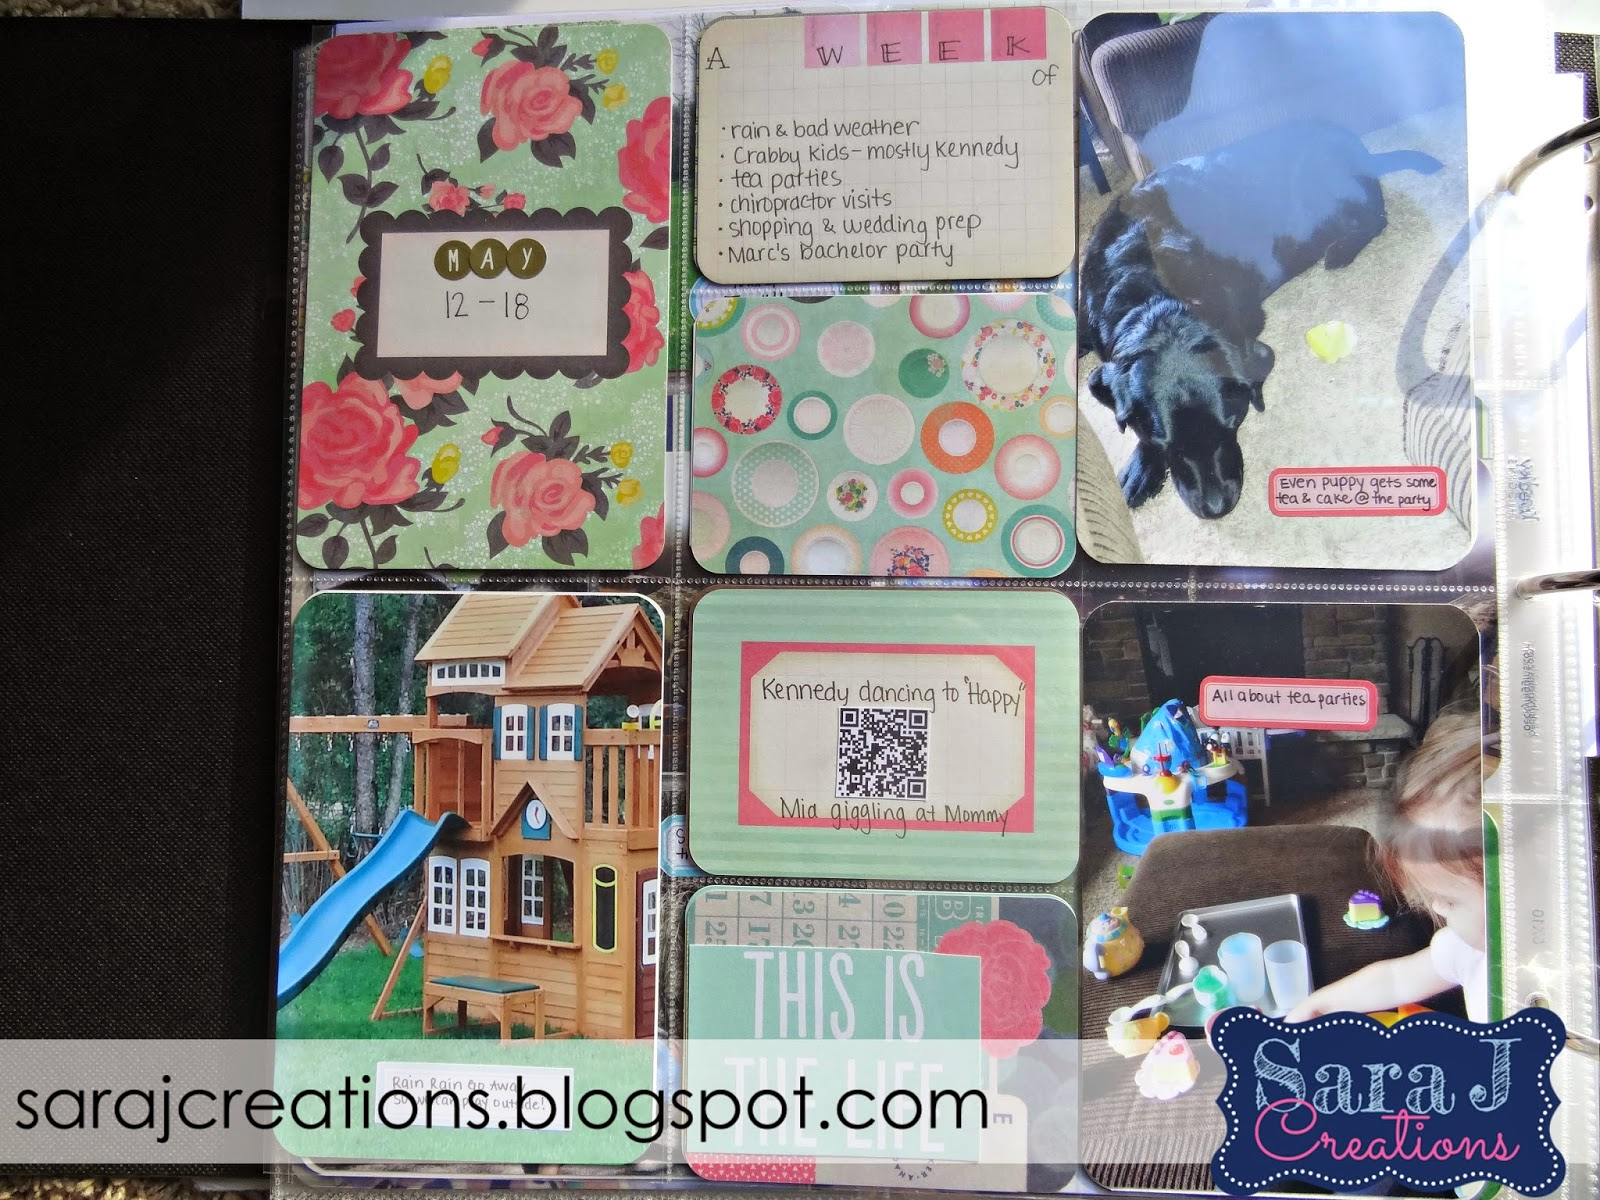 How to scrapbook with project life - To Do This I Started Uploading The Video To Youtube I Used To Upload It Right To My Family Blog But Then Blogger Switched Things Up And You Could